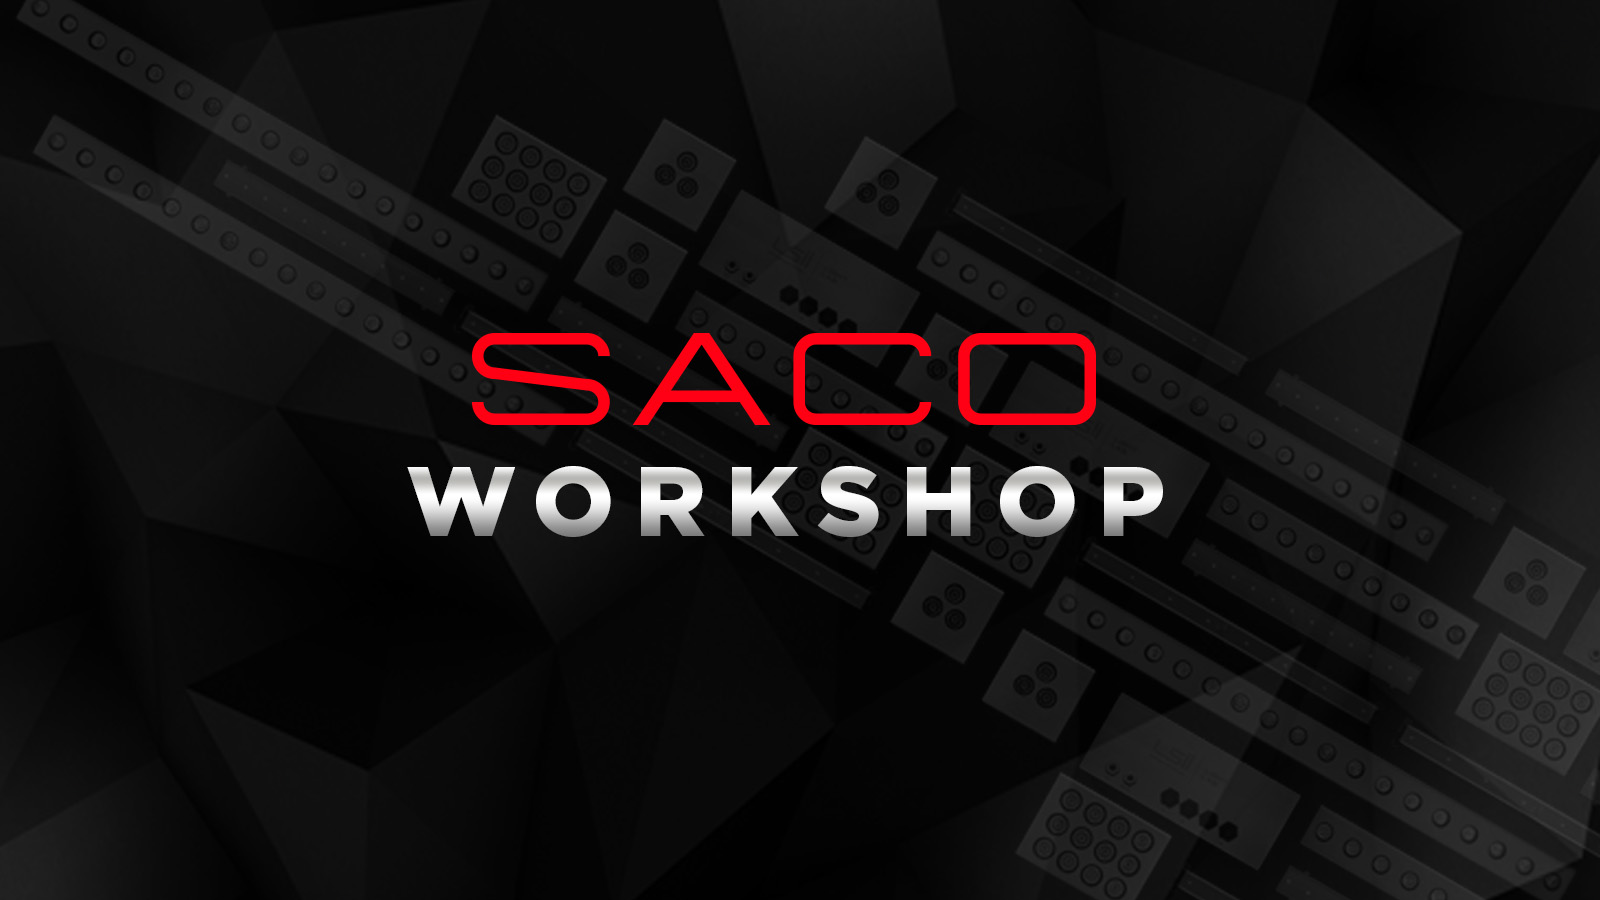 SACO WORKSHOP AND VIP LAUNCH PARTY 4-6 MAY